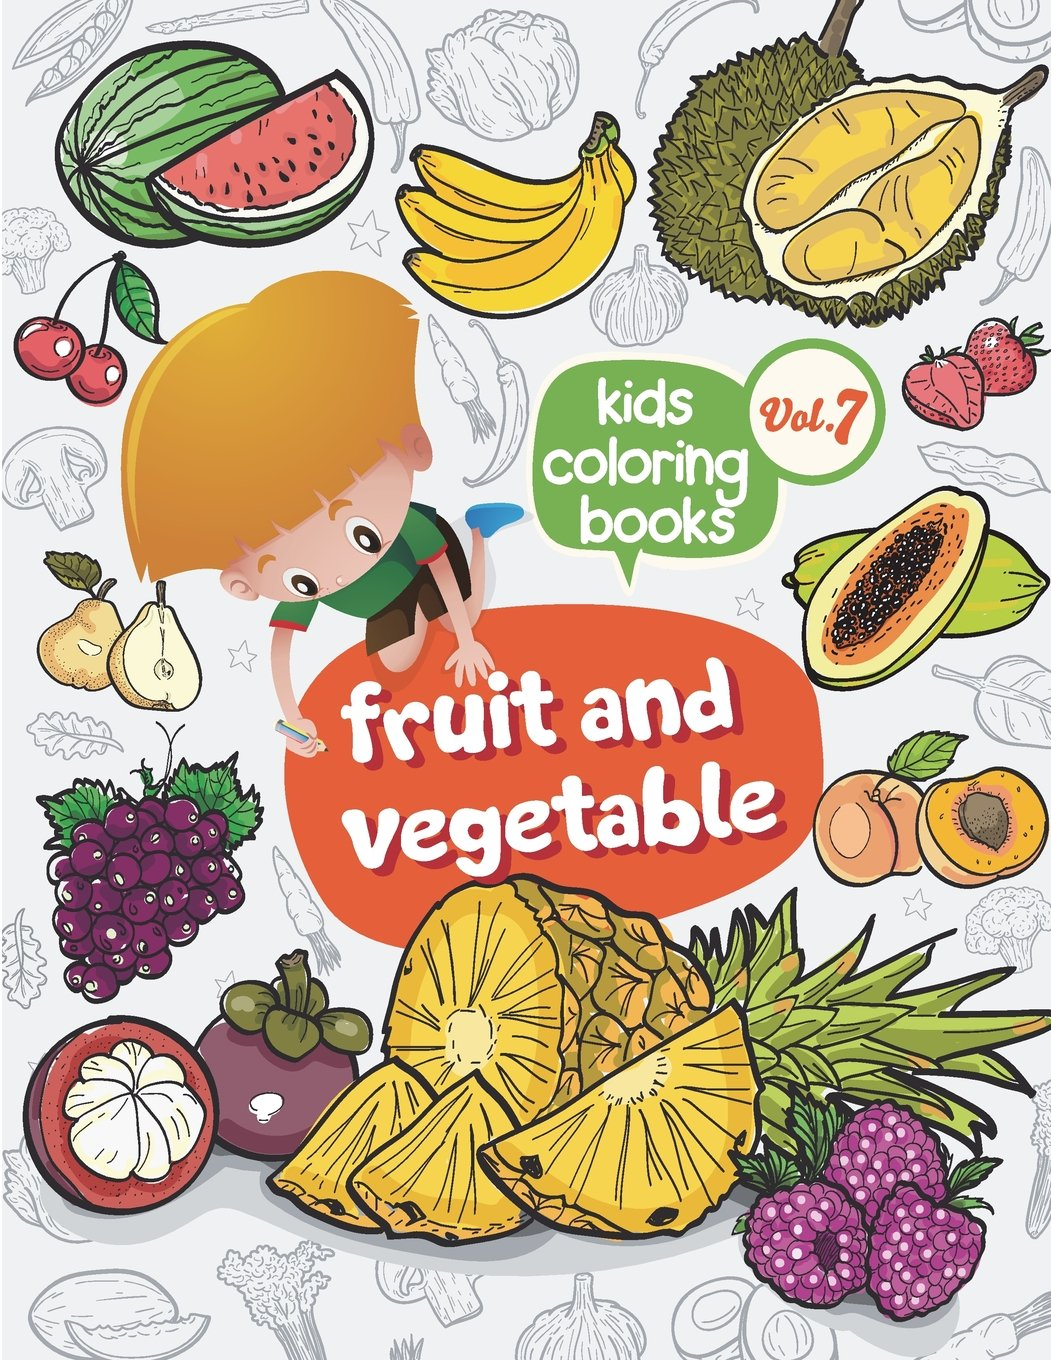 Kids coloring books Fruit and vegetable: Kids coloring books ...